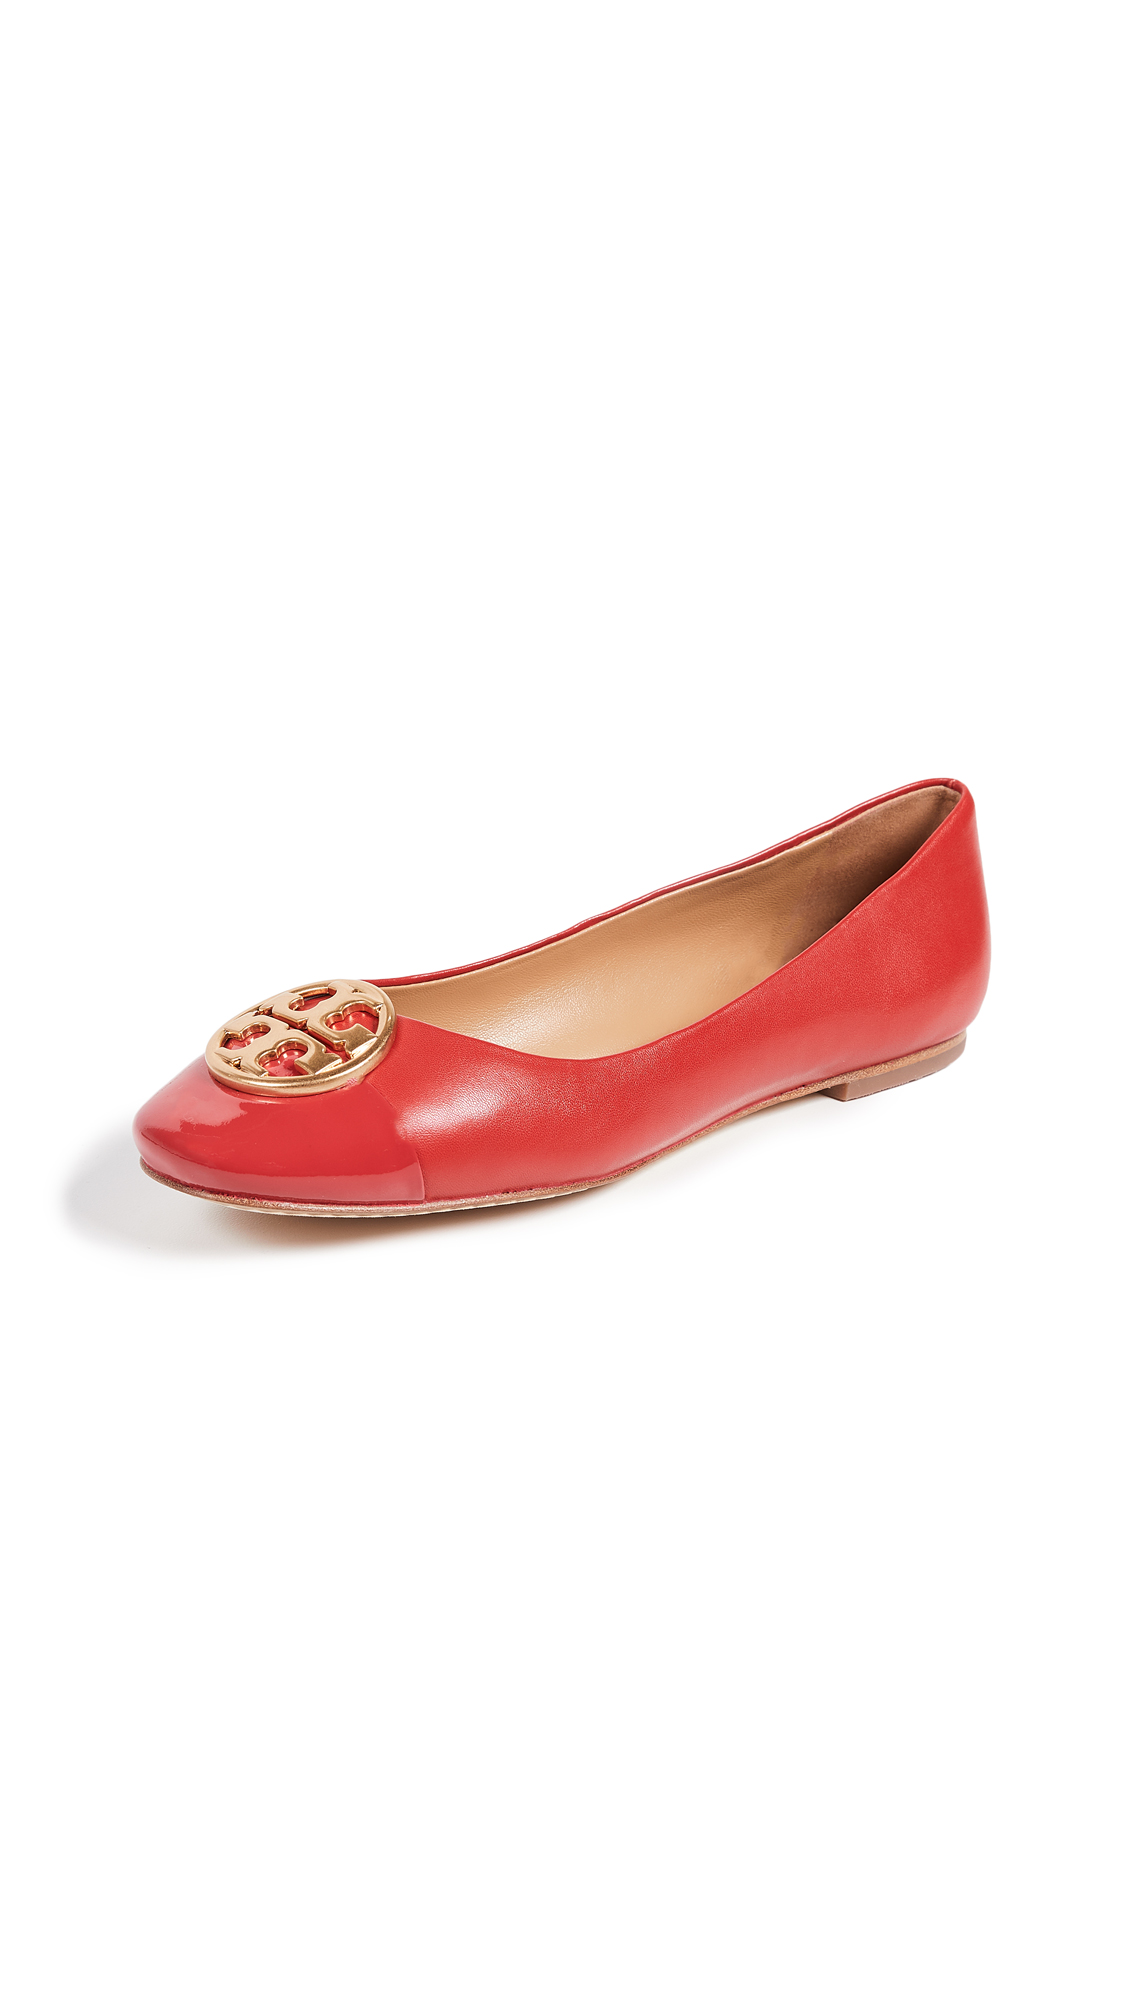 Tory Burch Chelsea Ballet Flats - Brilliant Red/Brilliant Red